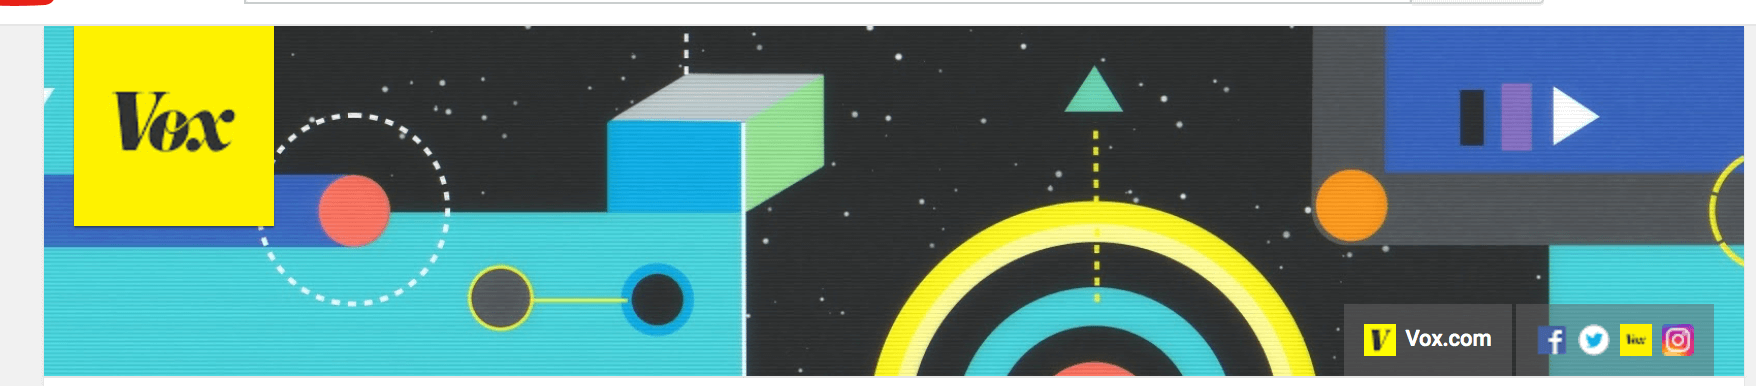 Youtube clipart space. The ideal channel art